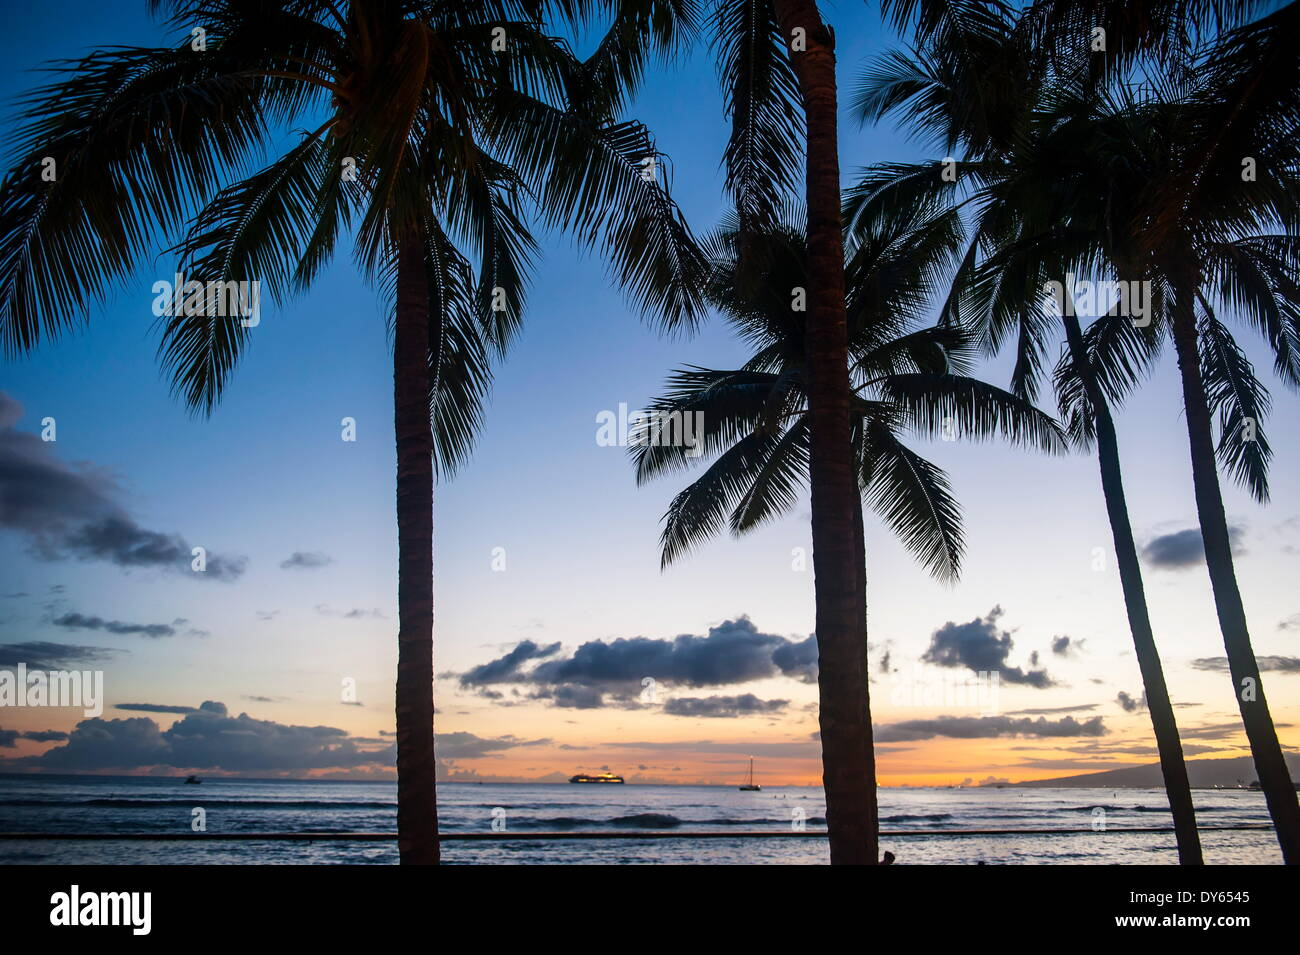 Palm trees on Waikiki Beach, Oahu, Hawaii, United States of America, Pacific - Stock Image